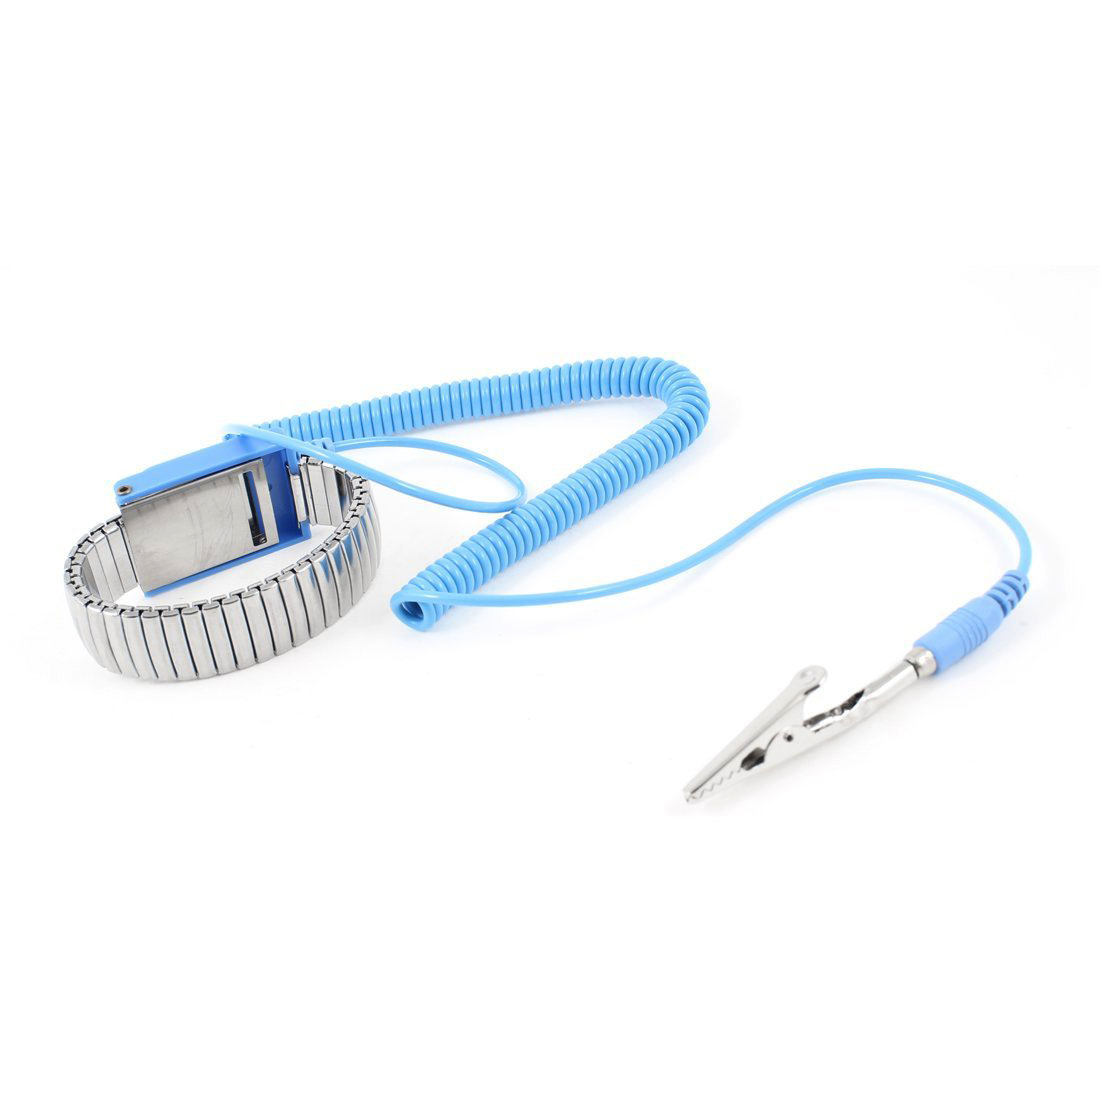 Imc Digital Technology Company Ltd. CNIM Hot Antistatic ESD Wristband Metal Adjustable Grounding Strap Blue